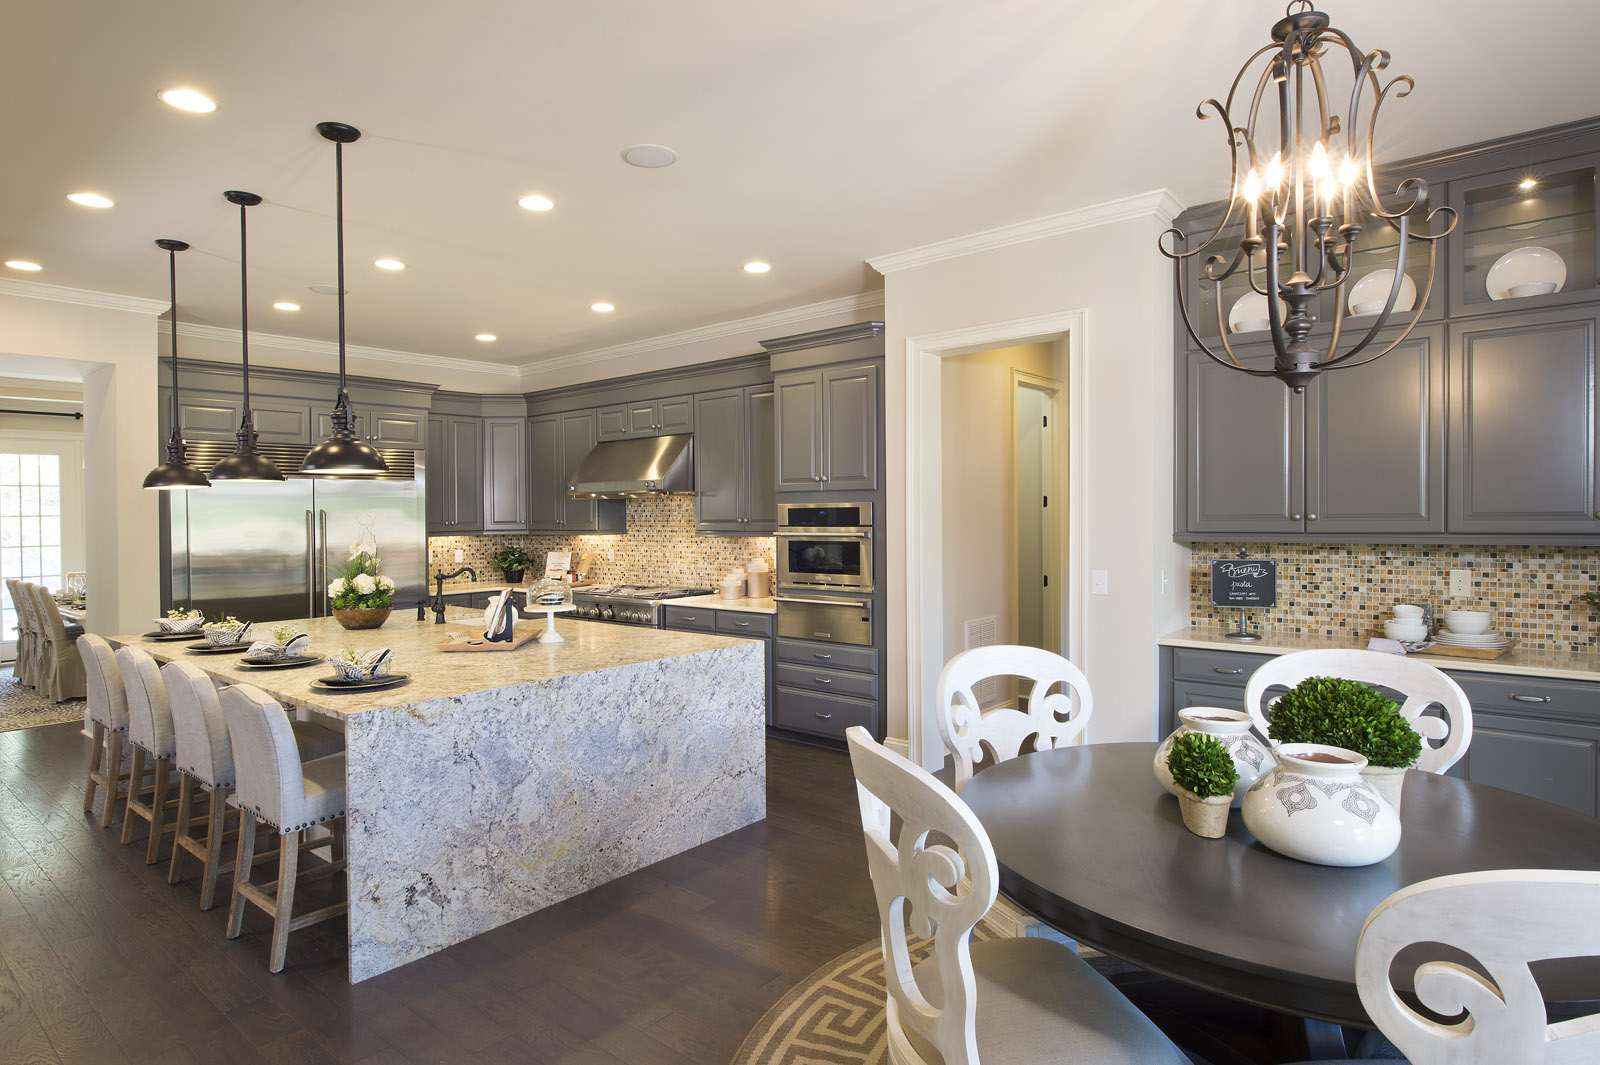 Shea homes opens new luxury model homes in weddington nc for Interior design model homes pictures